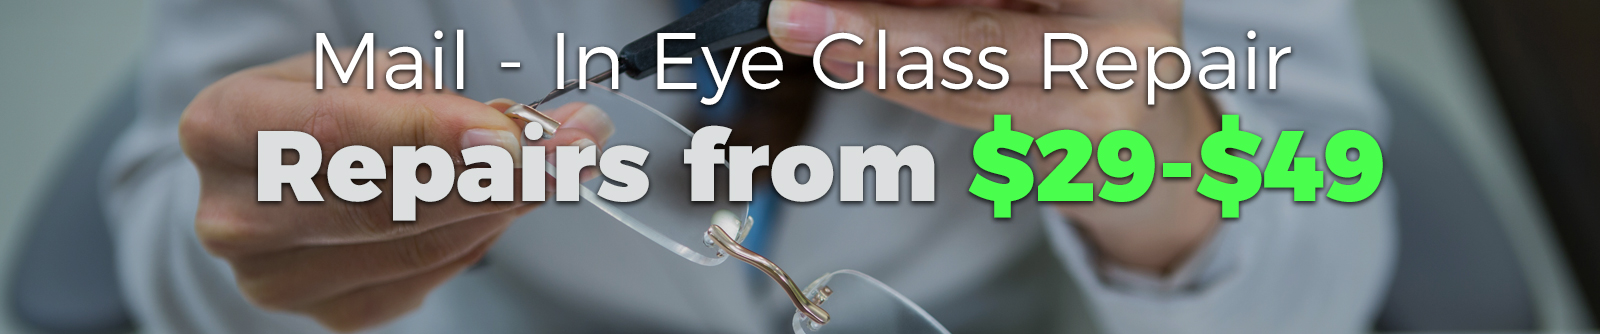 aad4276ab88 Fastest Mail-In Eyeglass Repair Service In The Business.